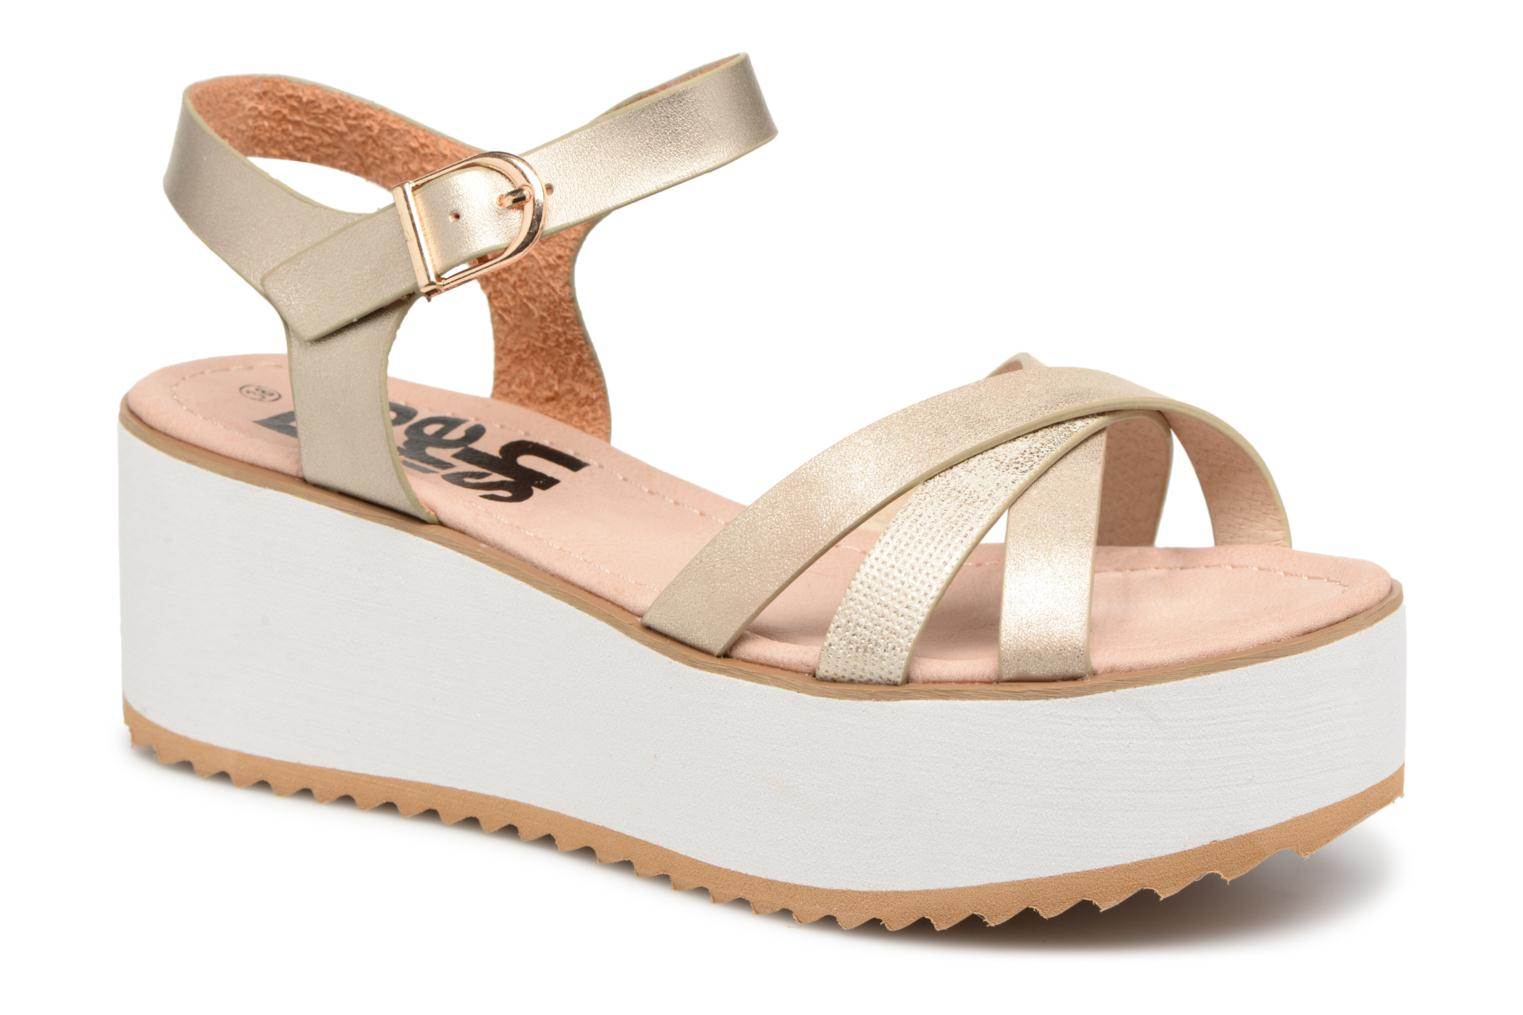 Marques Chaussure femme Refresh femme 64099 Nude